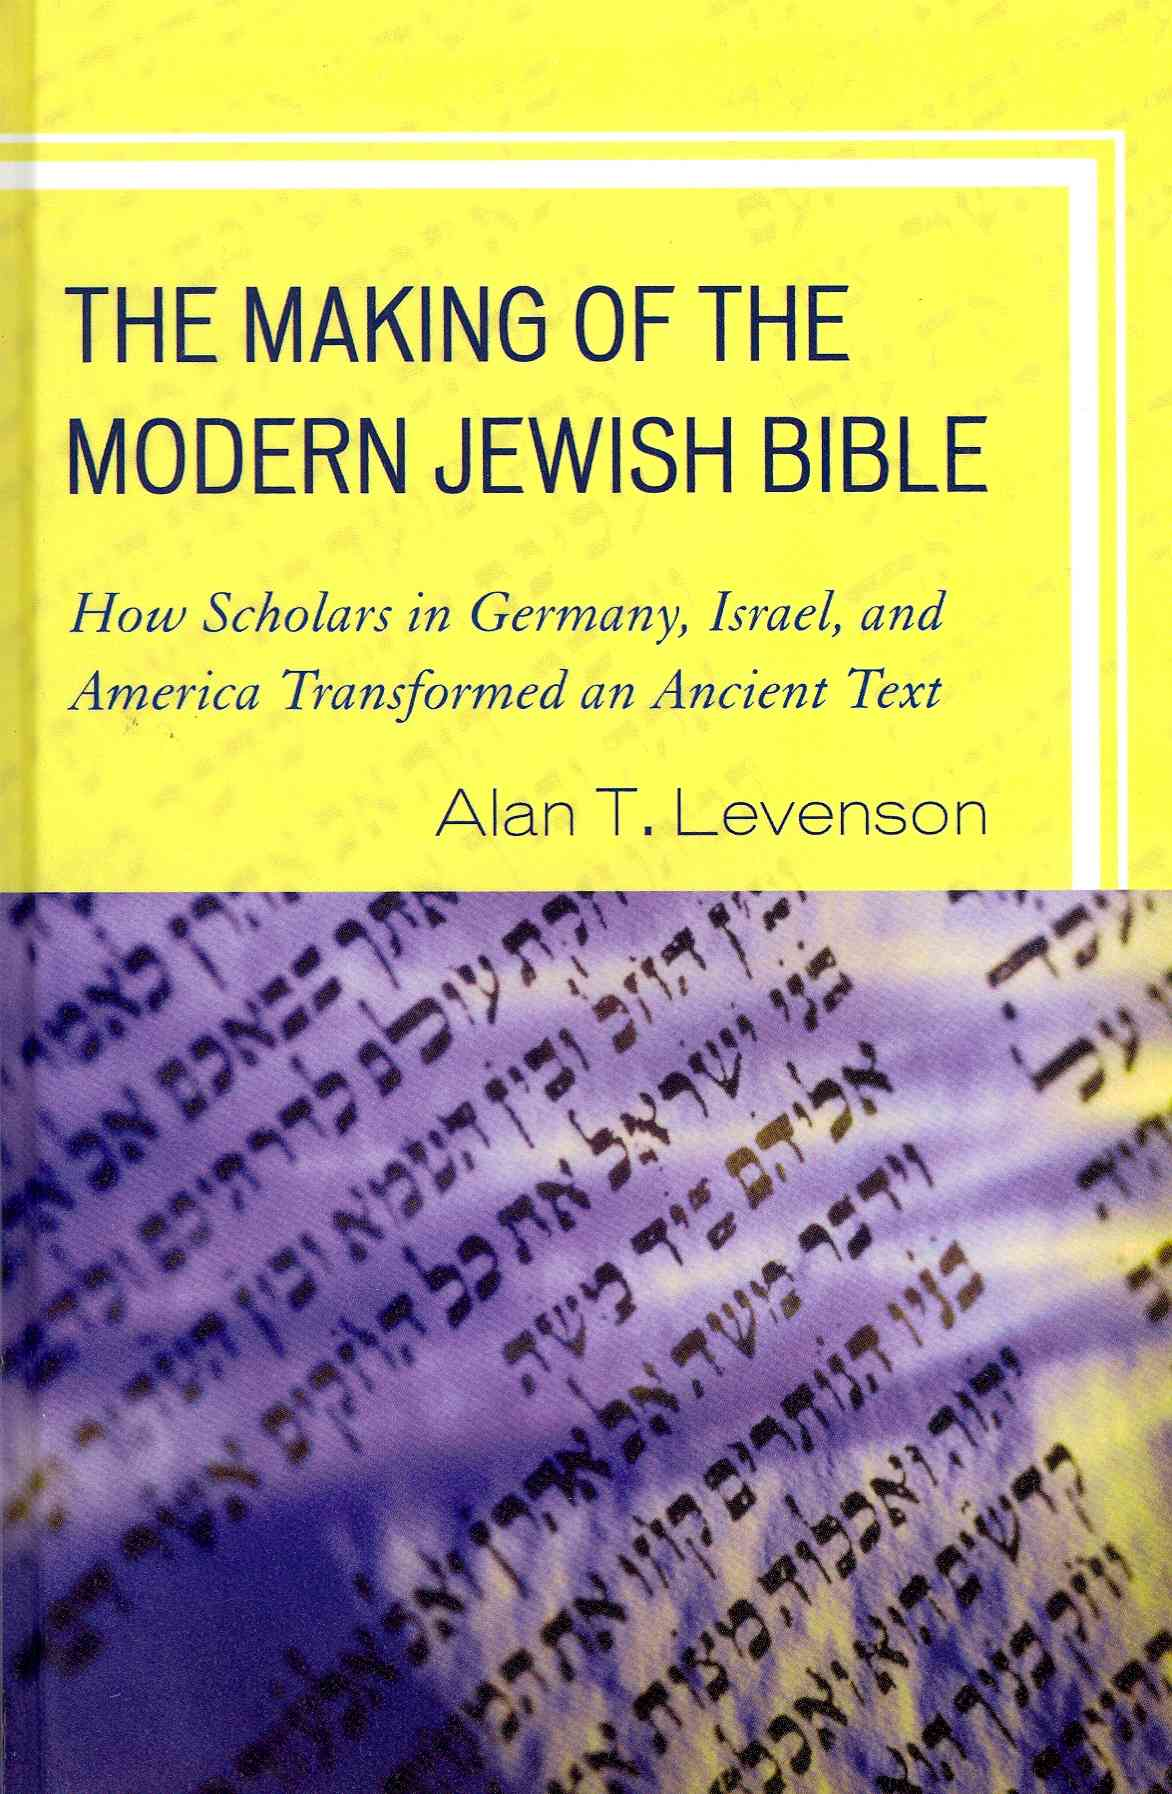 The Making of the Modern Jewish Bible: How Scholars in Germany, Israel, and America Transformed an Ancient Text (Hardcover)